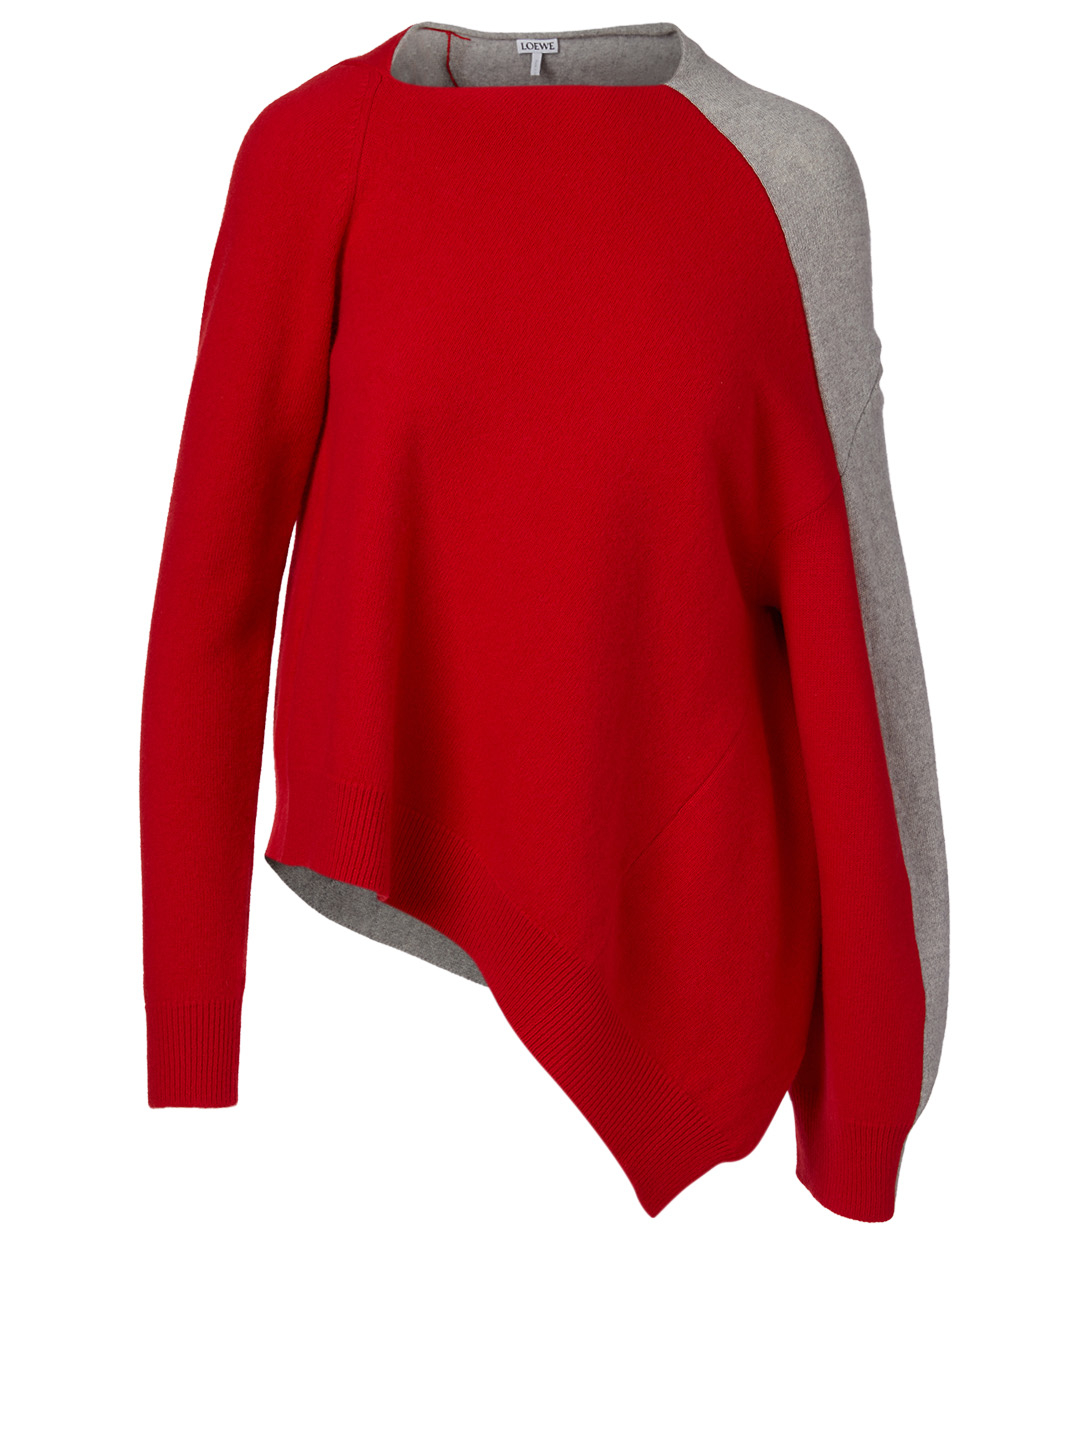 LOEWE Wool And Cashmere Sweater Women's Red